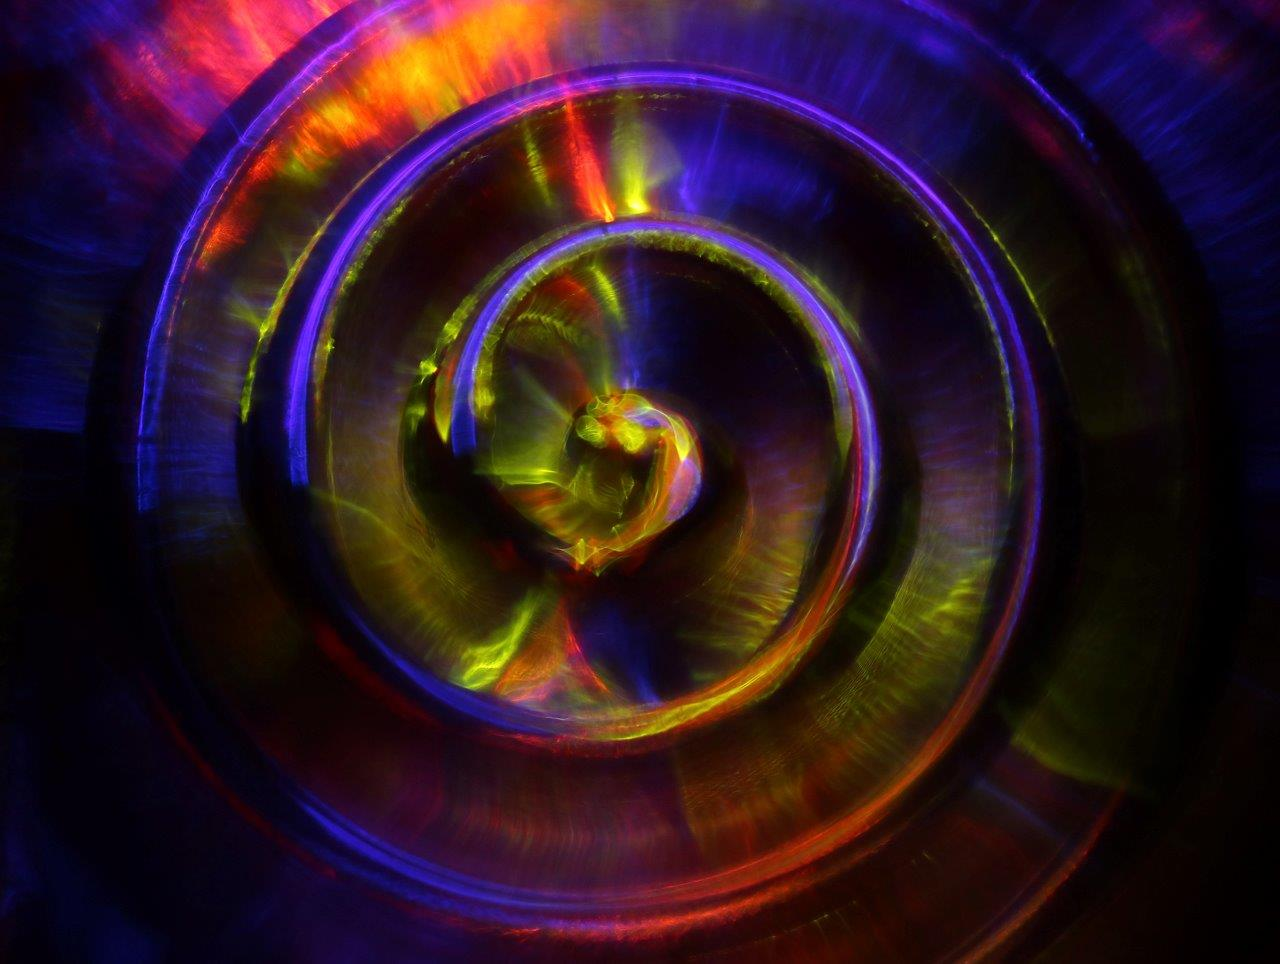 Image by MCarscience Photography for Luximprint showcase area 3d Printed Lens Art showing blurred fresnel lens core